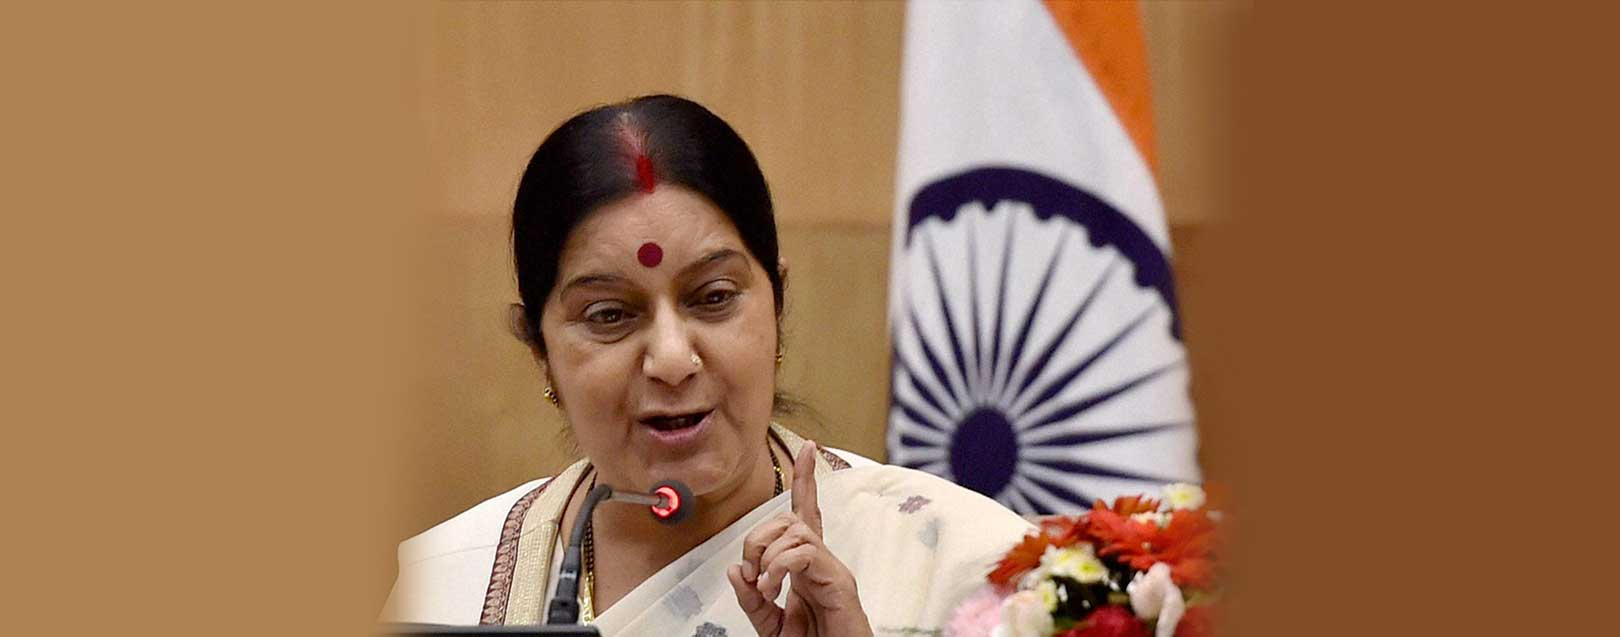 Govt to further relax visa norms to boost tourism: Swaraj